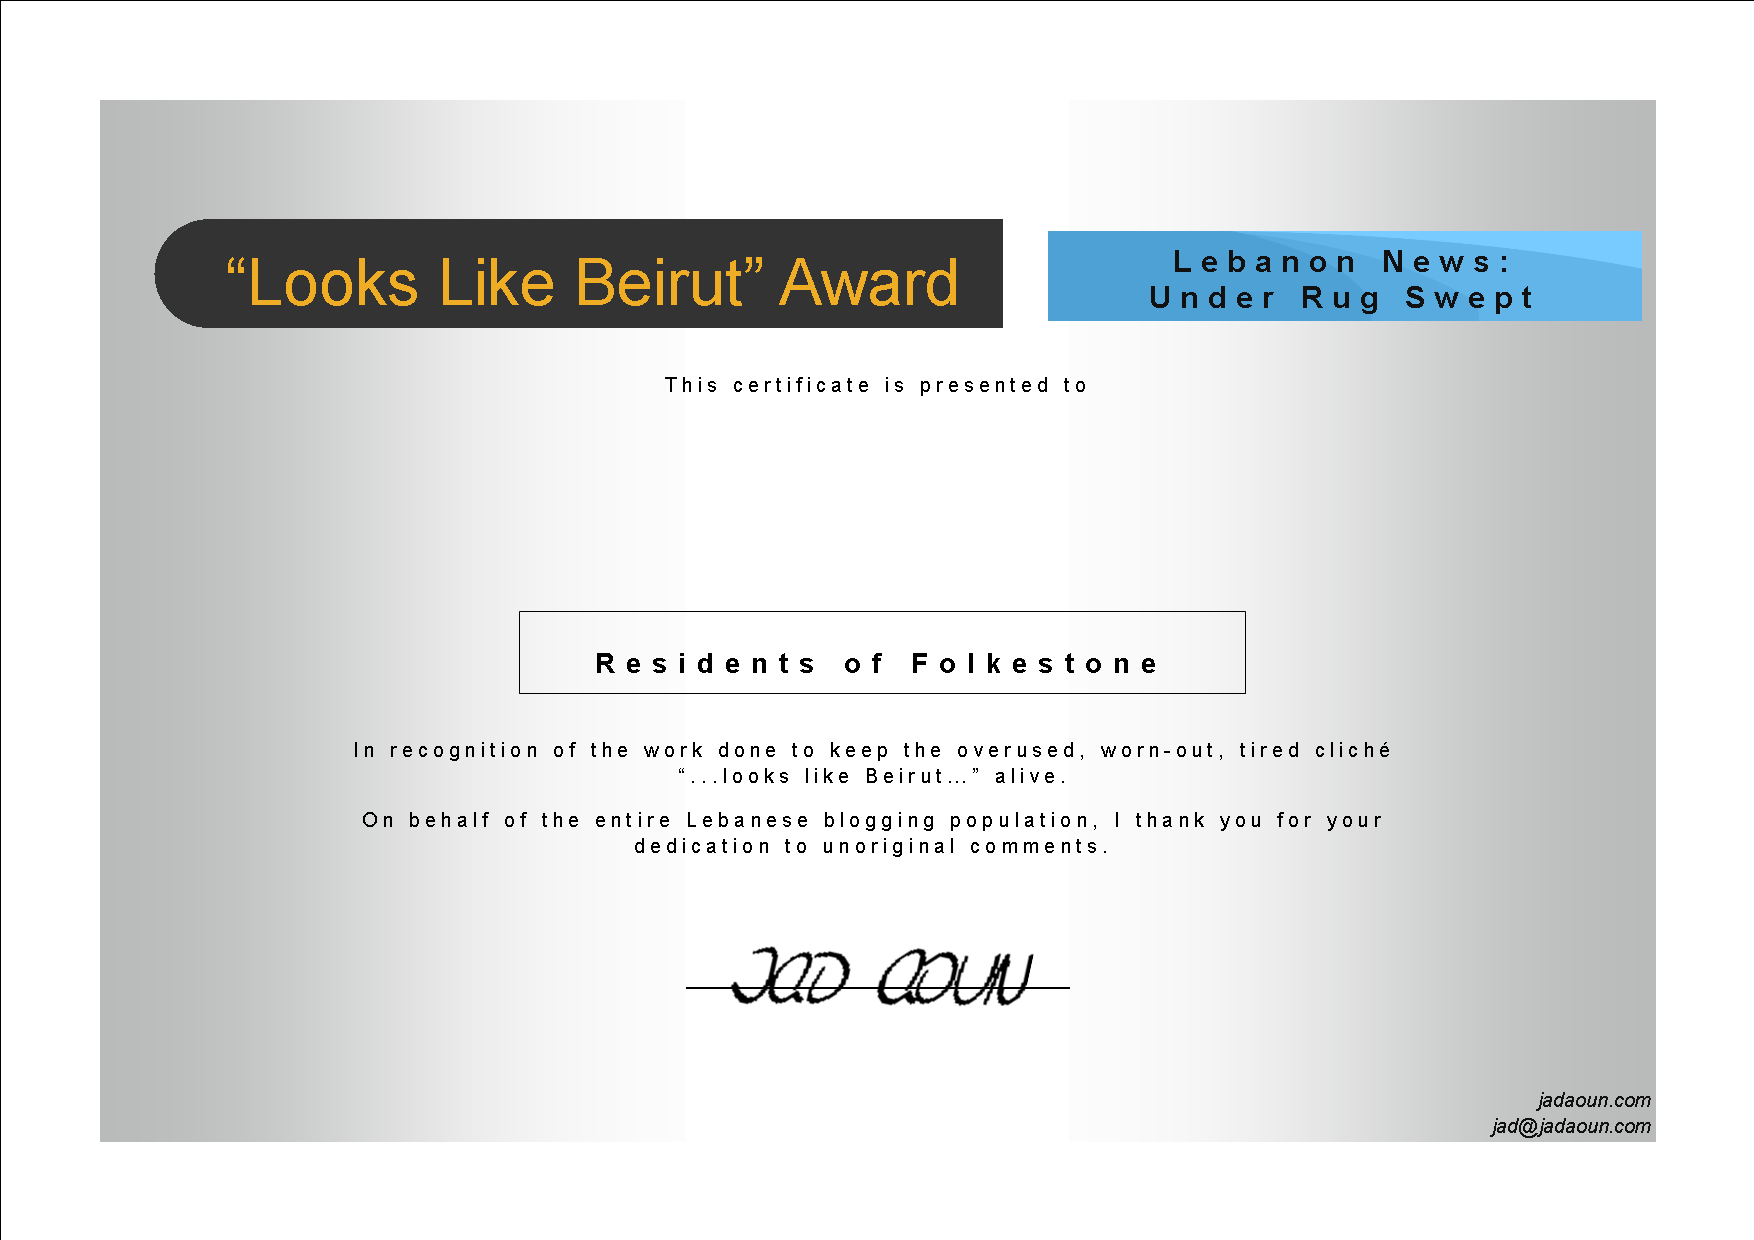 Looks Like Beirut Certificate to the Residents of Folkestone